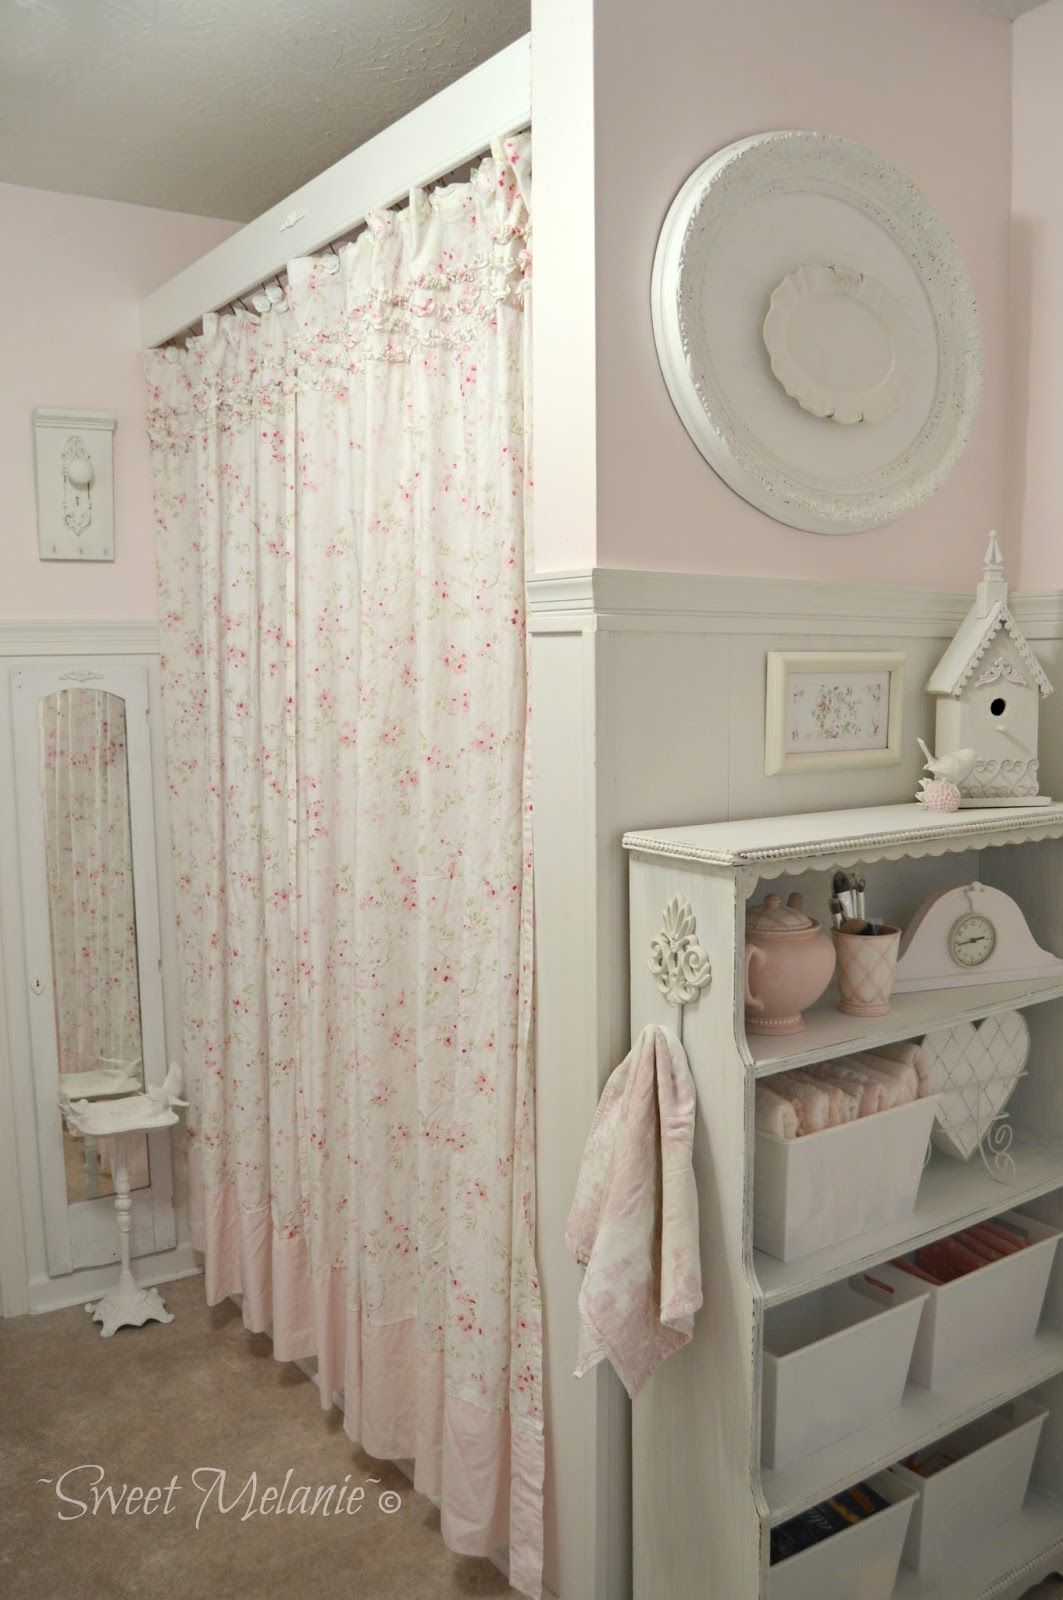 Box Doccia Shabby Chic.Years Ago We Added A Ledge To Our Bathroom Window I Loved